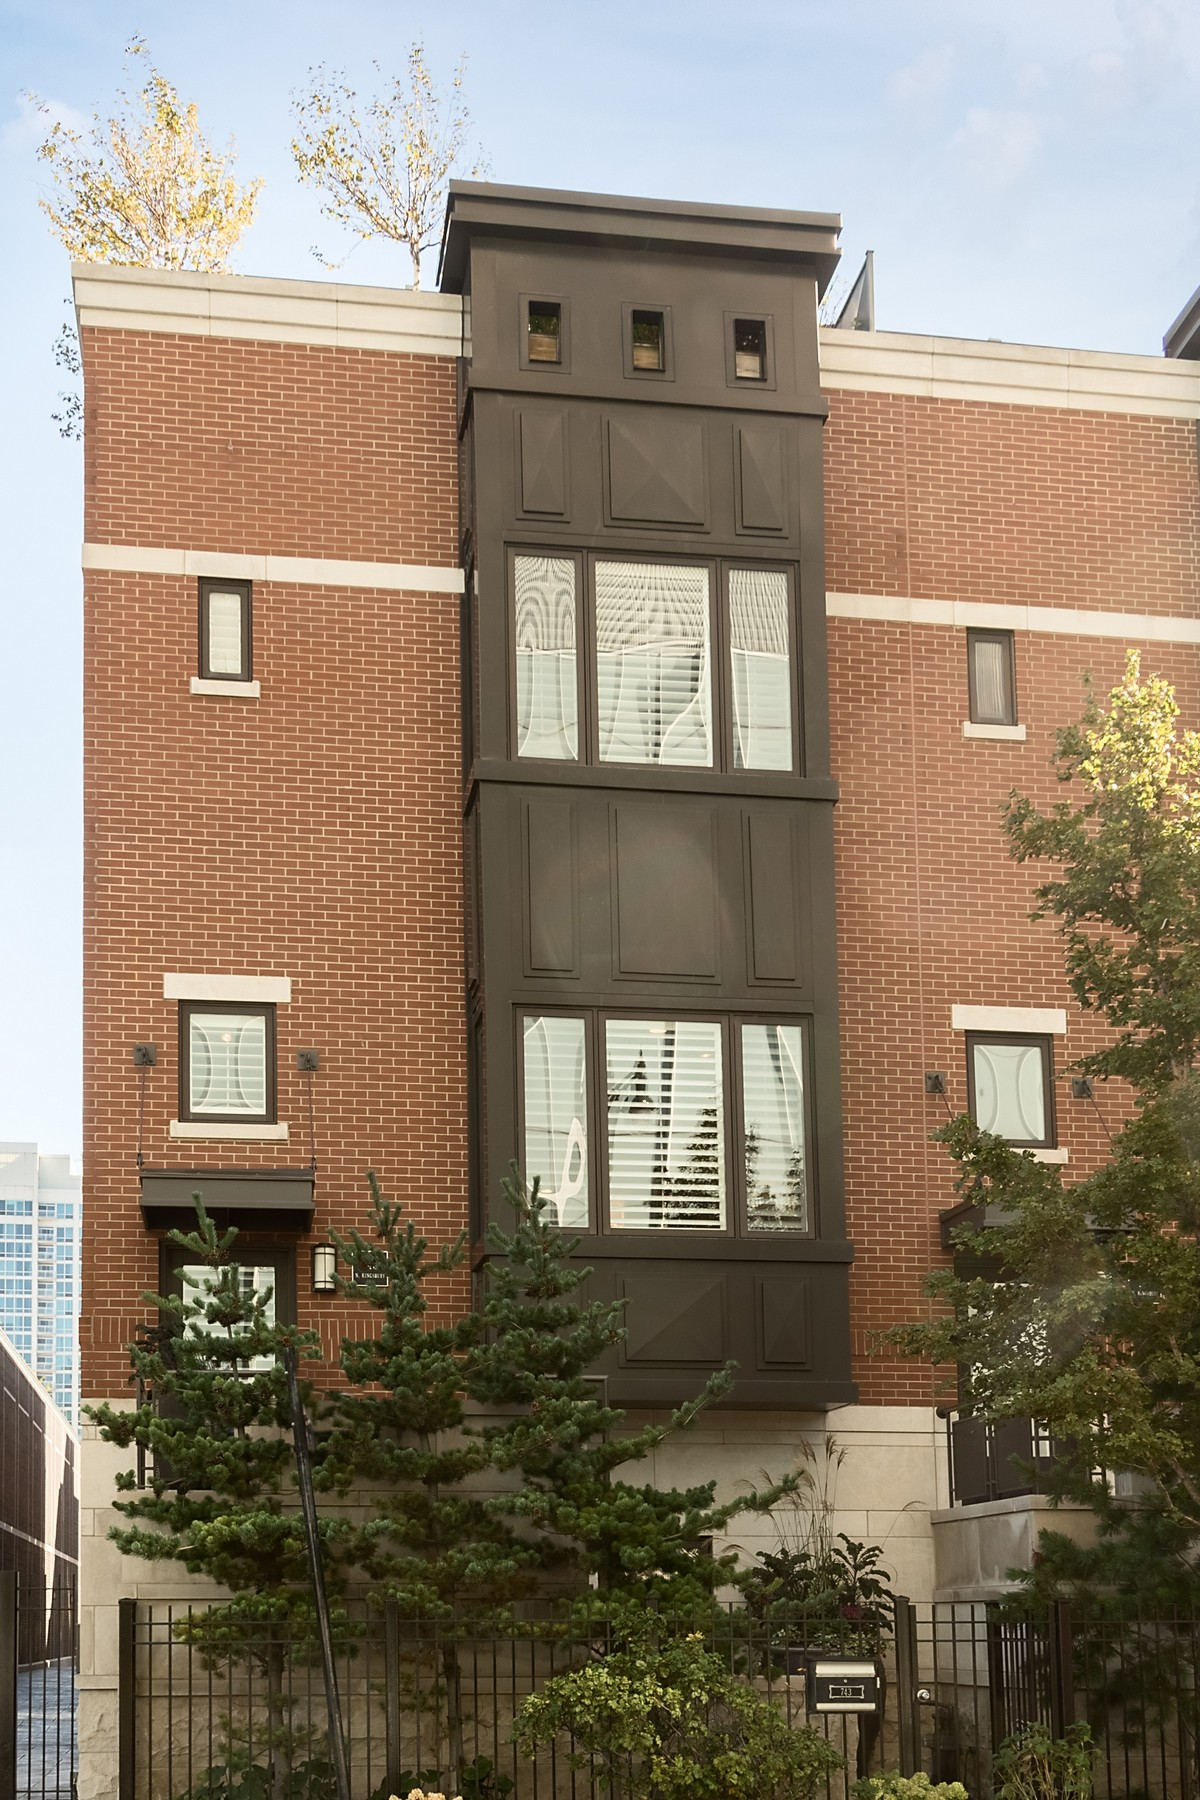 Таунхаус для того Продажа на Luxury Abounds! 743 N Kingsbury Street, Near North Side, Chicago, Иллинойс, 60654 Соединенные Штаты